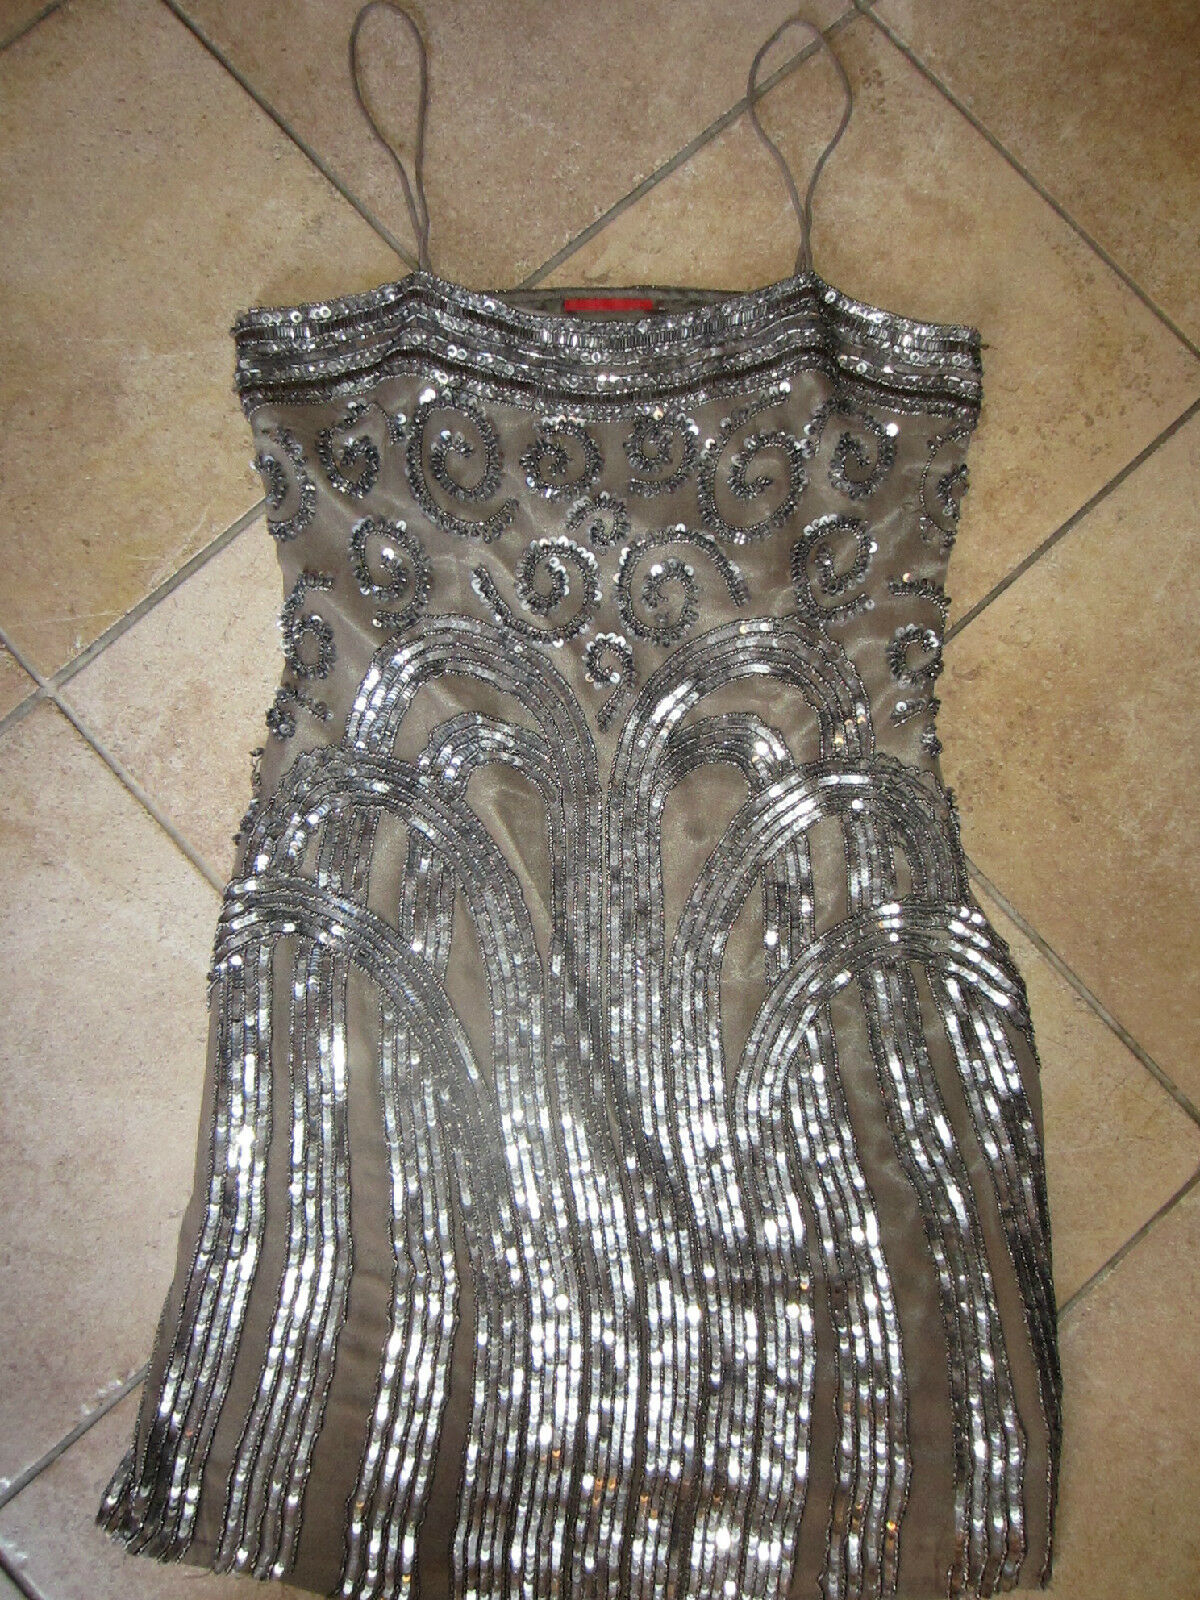 damen BEADED JEWELED EXQUISITE SEQUINED DERHY BRONZE SIDE ZIP DRESS SMALL